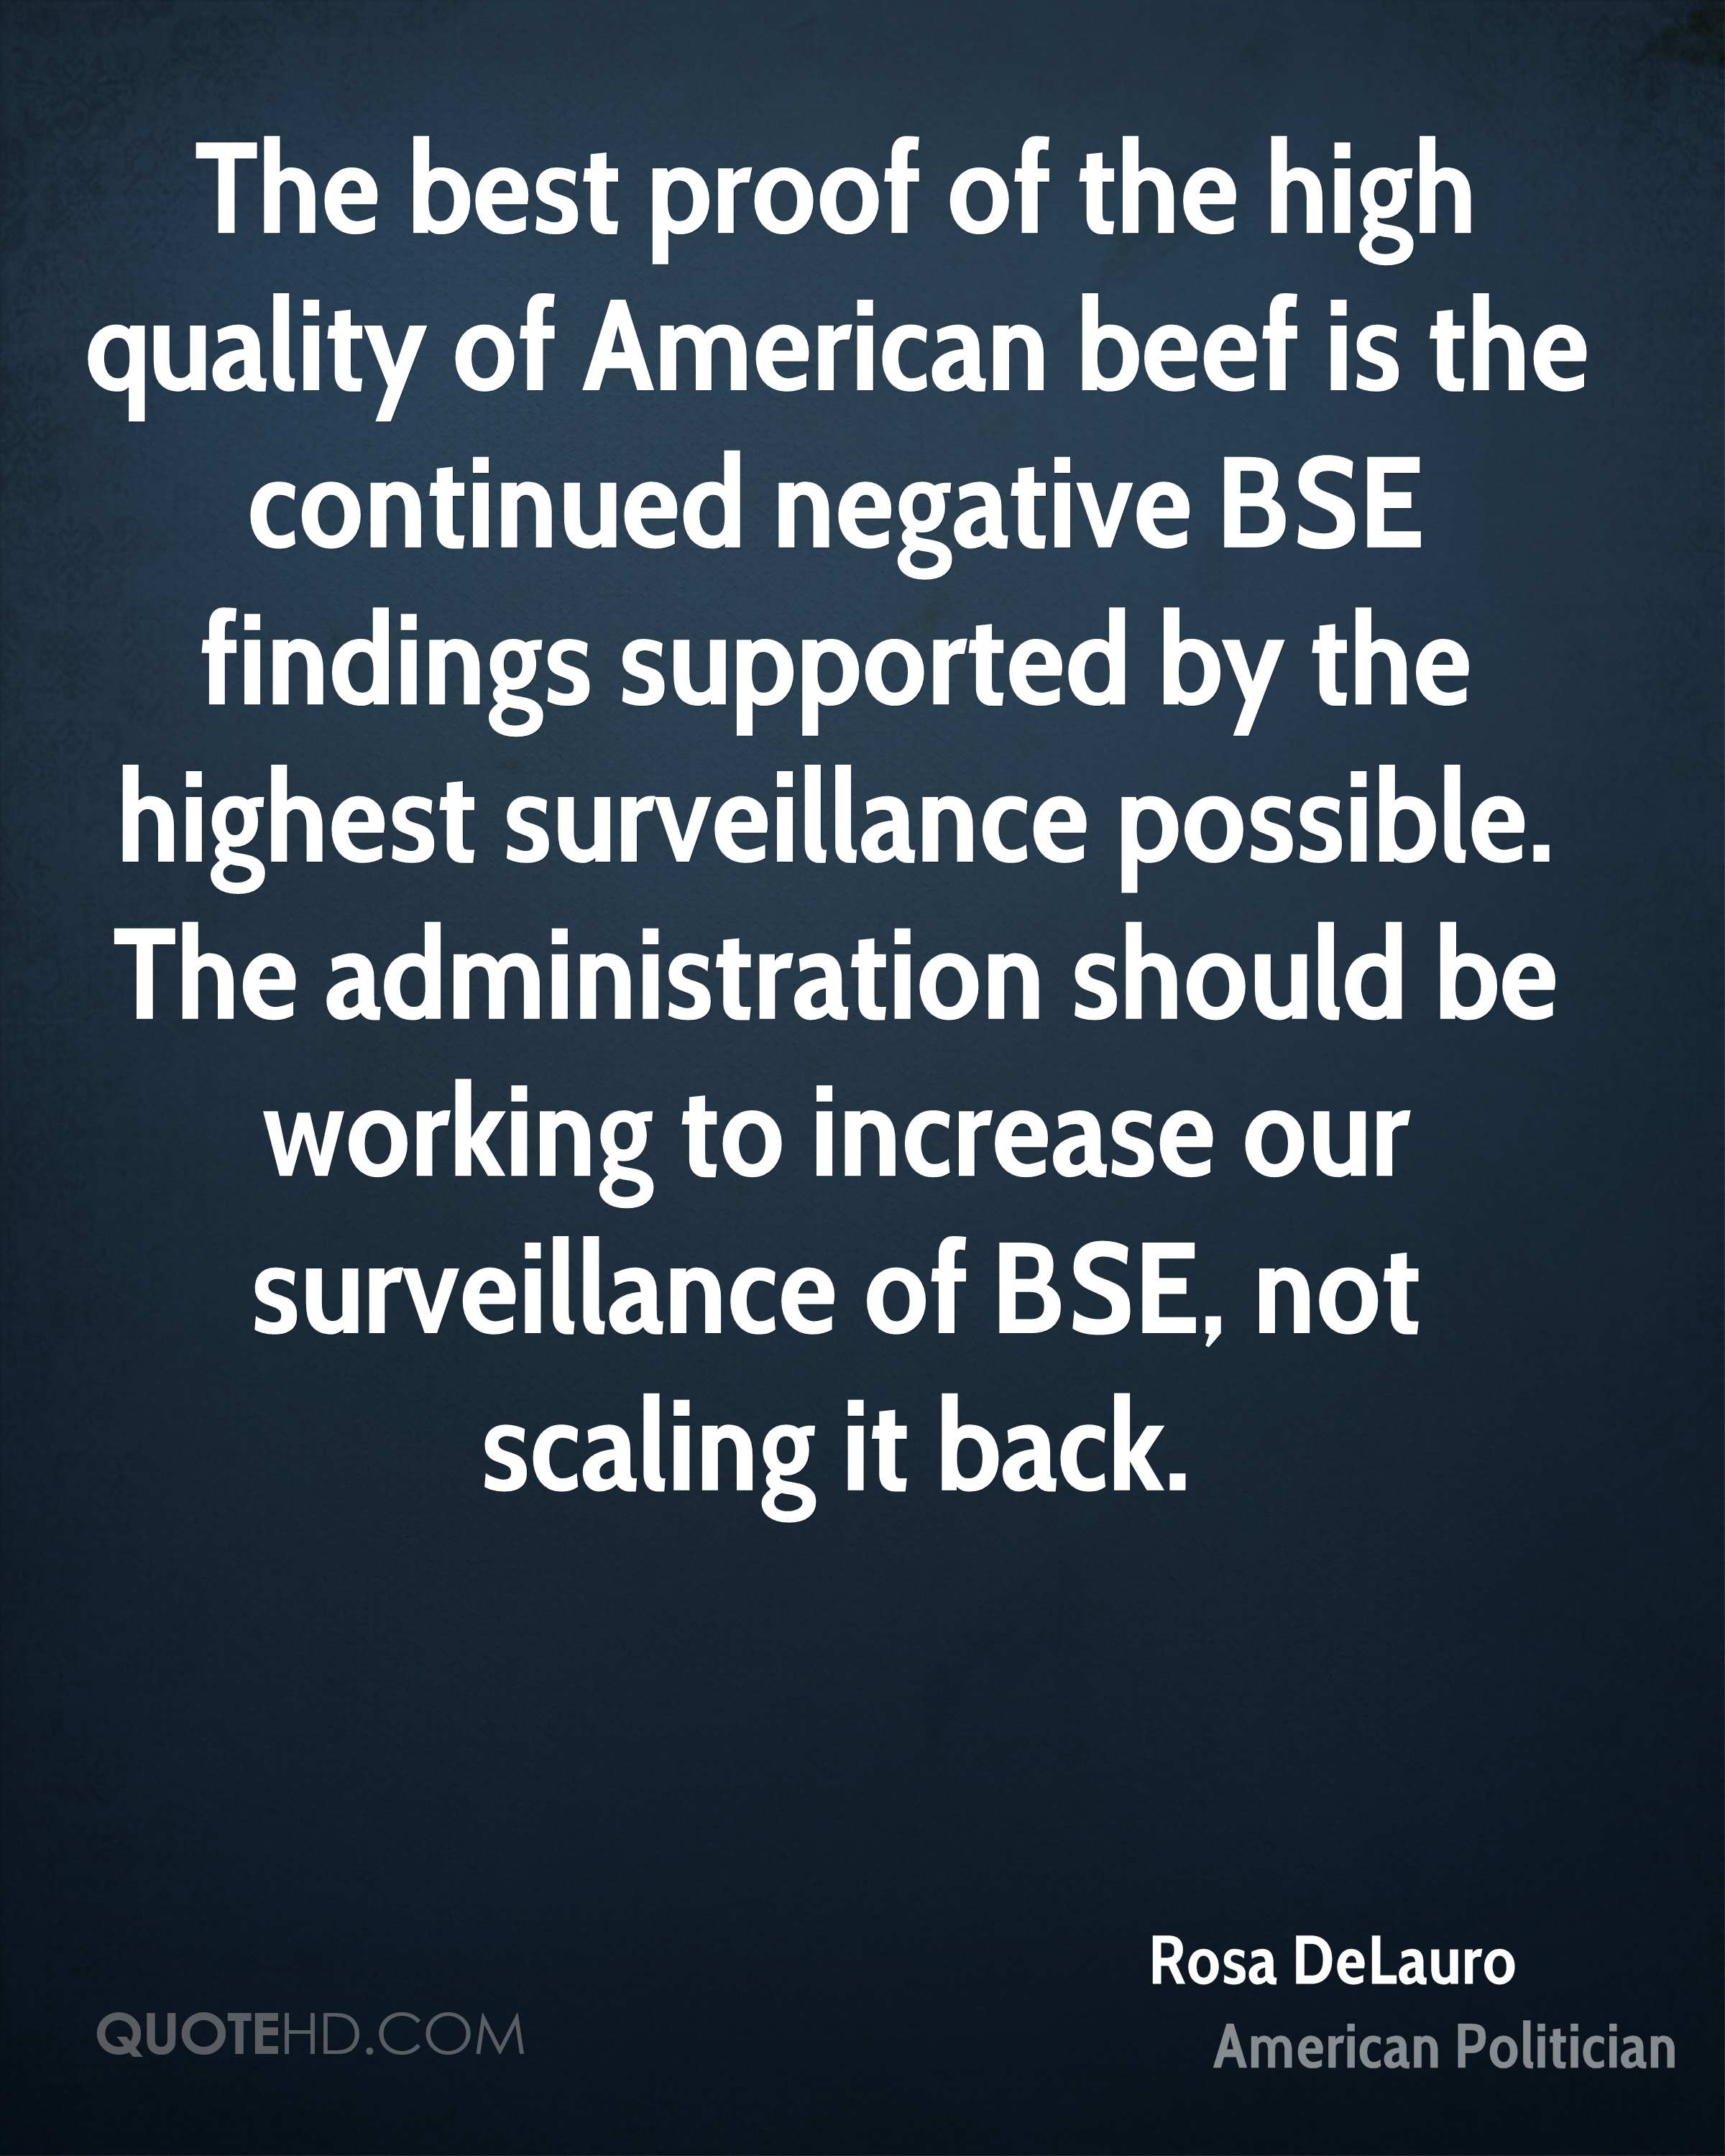 The best proof of the high quality of American beef is the continued negative BSE findings supported by the highest surveillance possible. The administration should be working to increase our surveillance of BSE, not scaling it back.